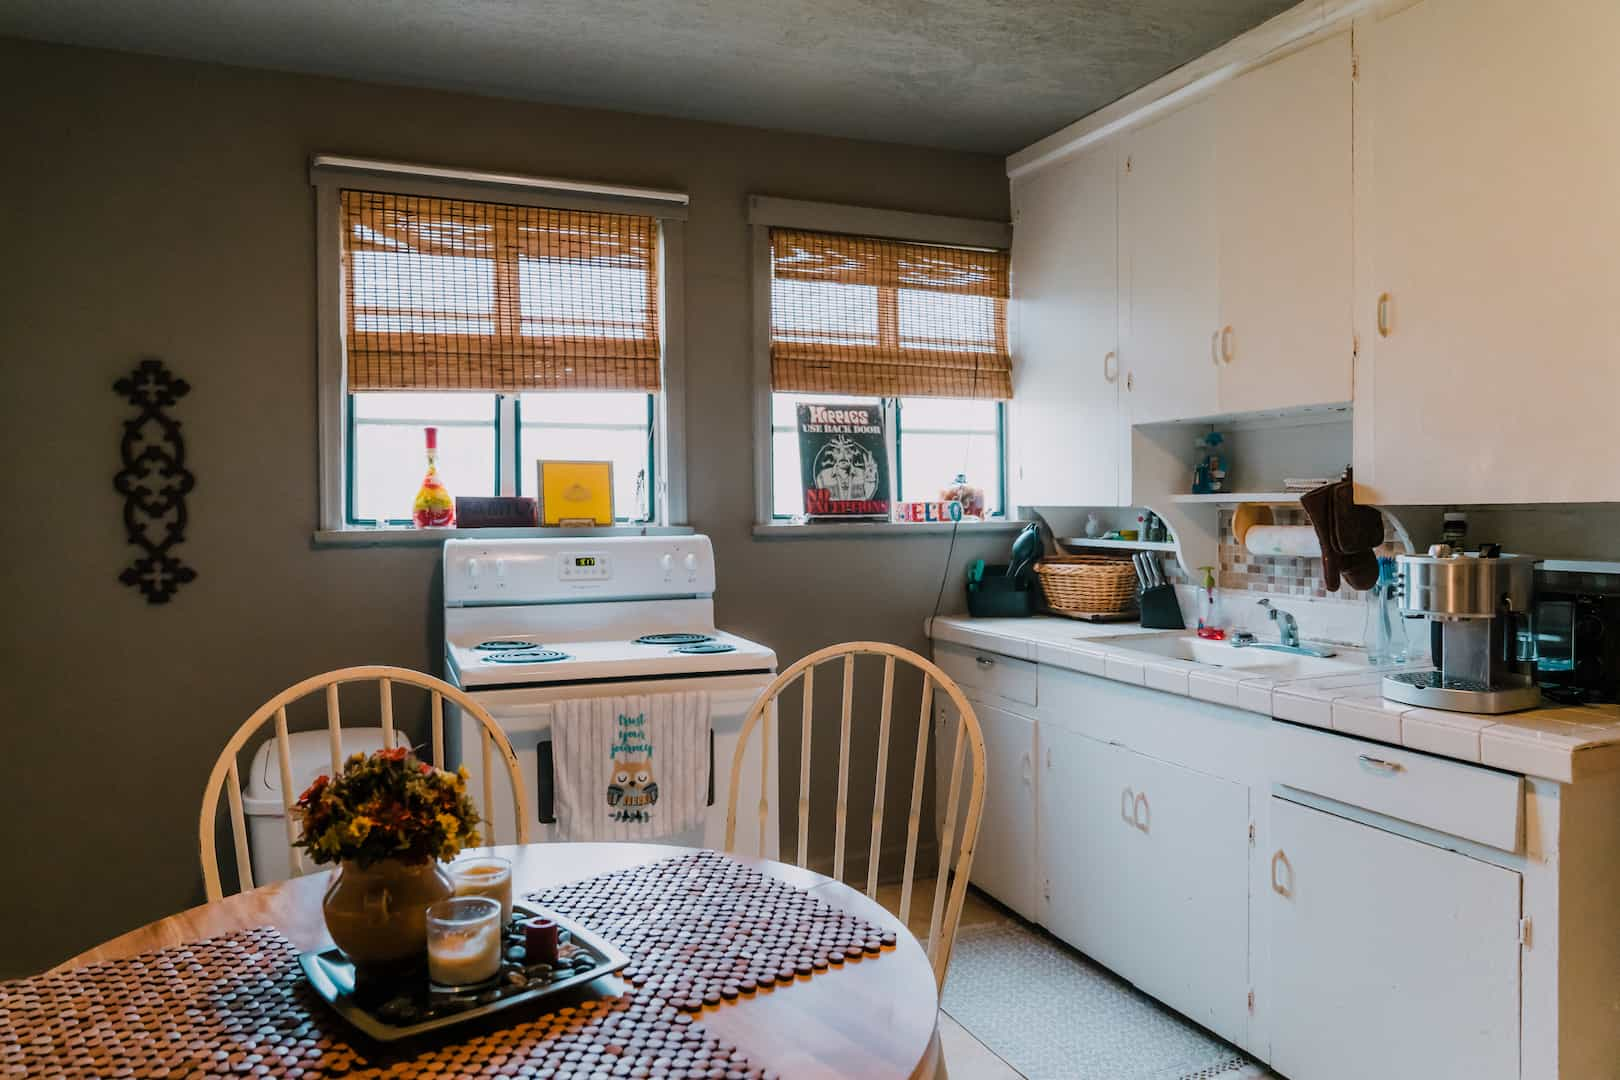 Photo of Sober Living Apartments Kitchen